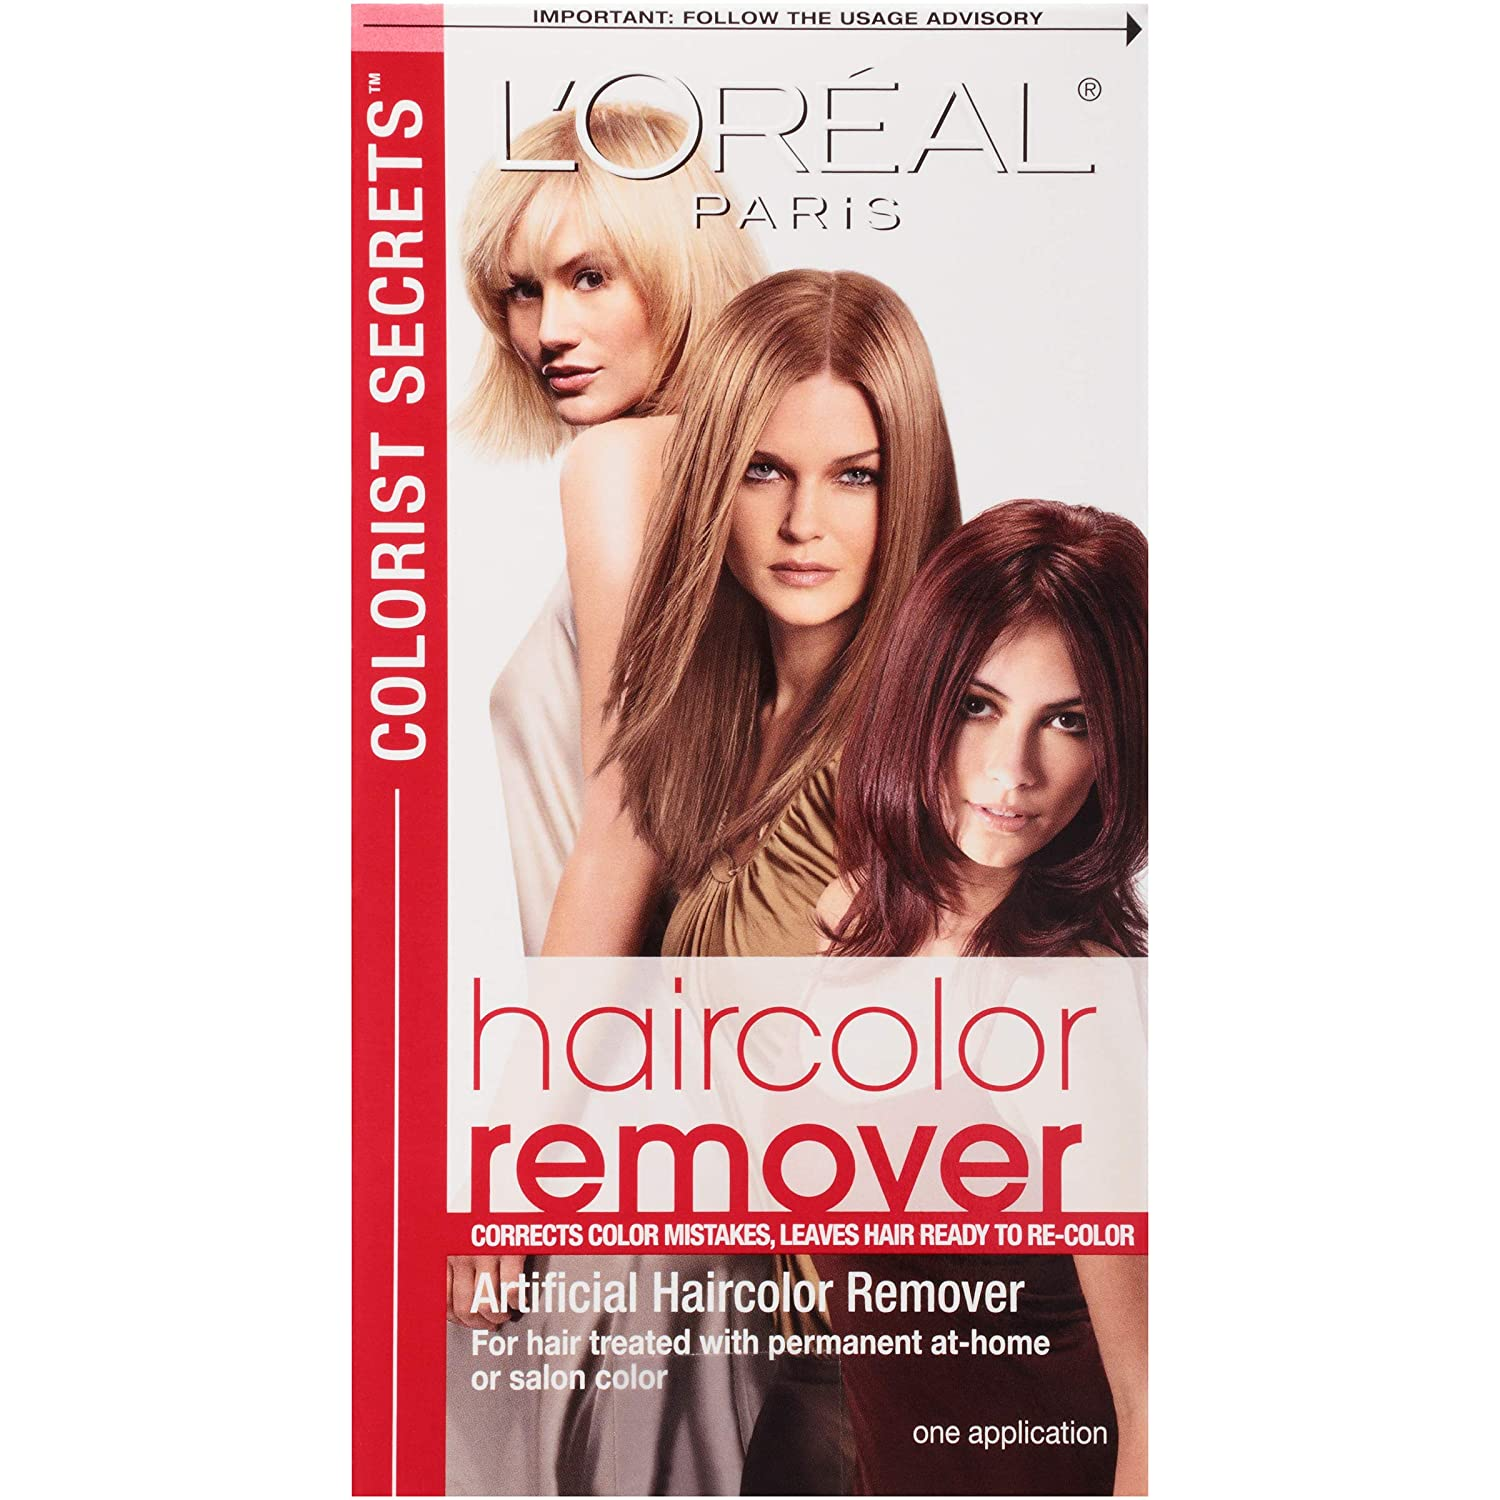 Amazon Loral Paris Colorist Secrets Haircolor Remover Hair